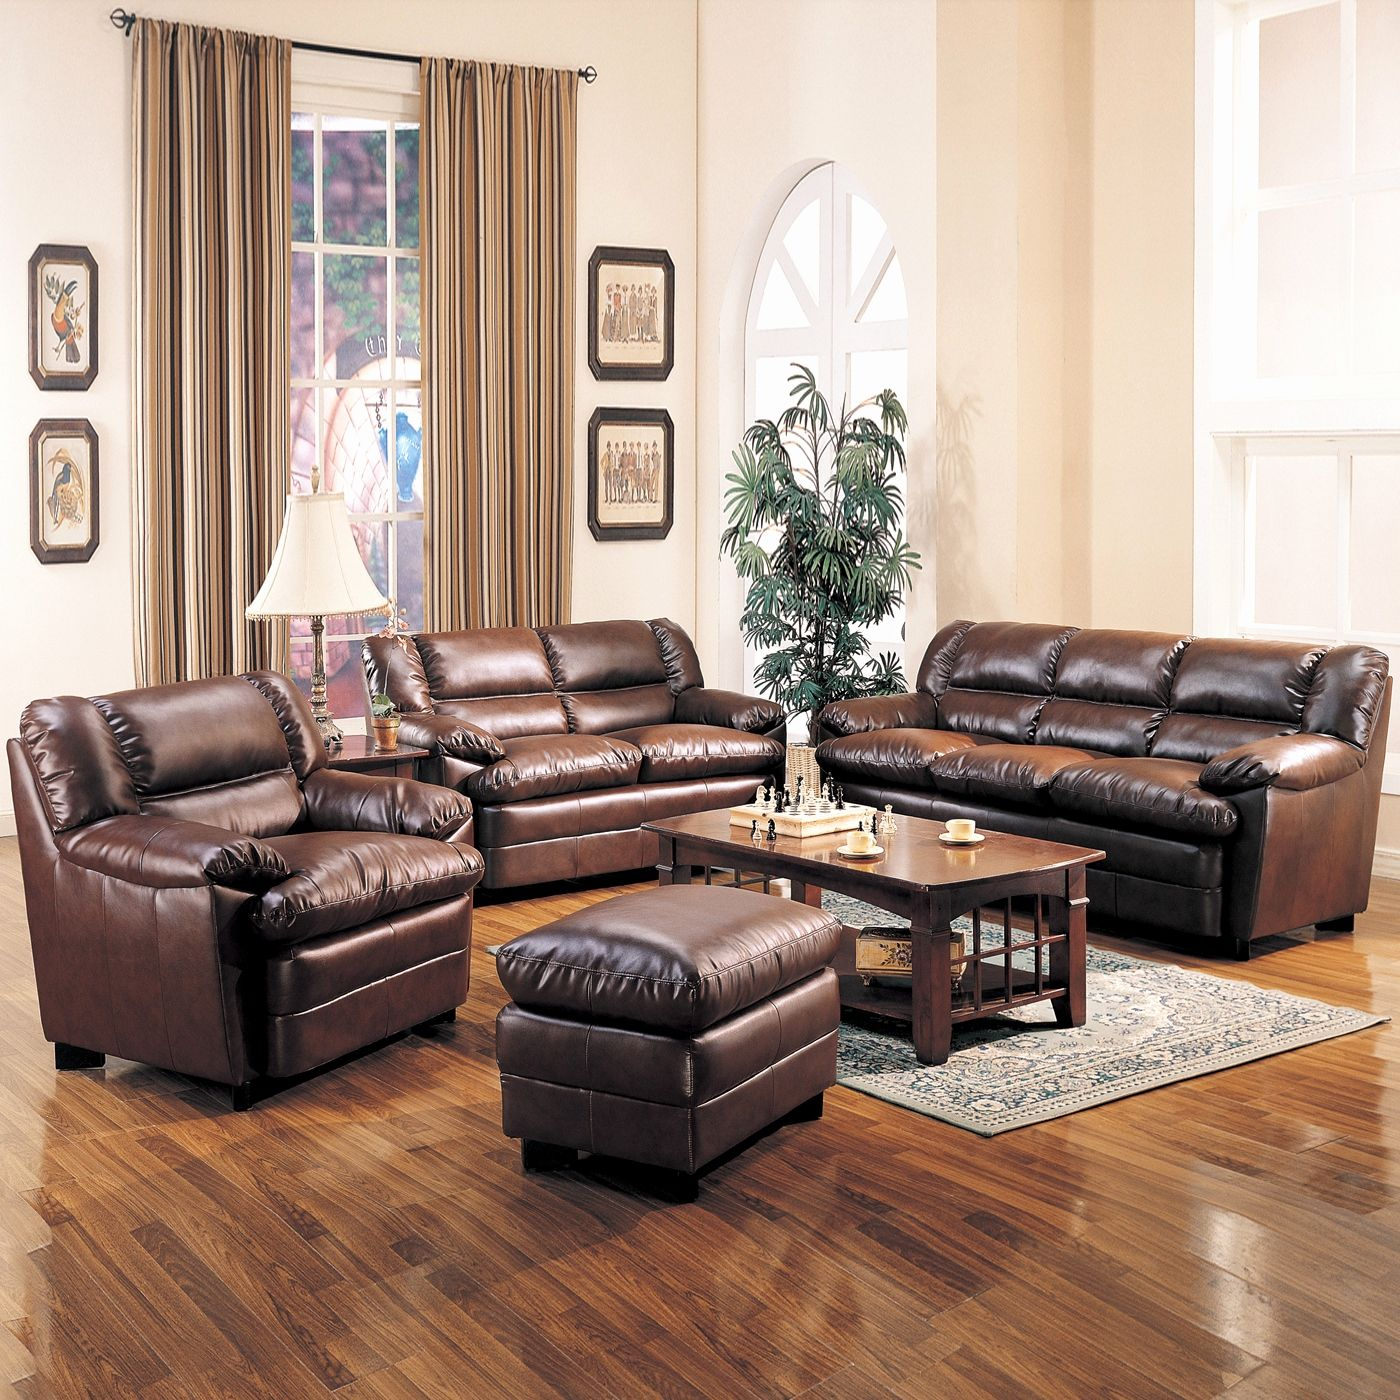 49++ Small living room sets information